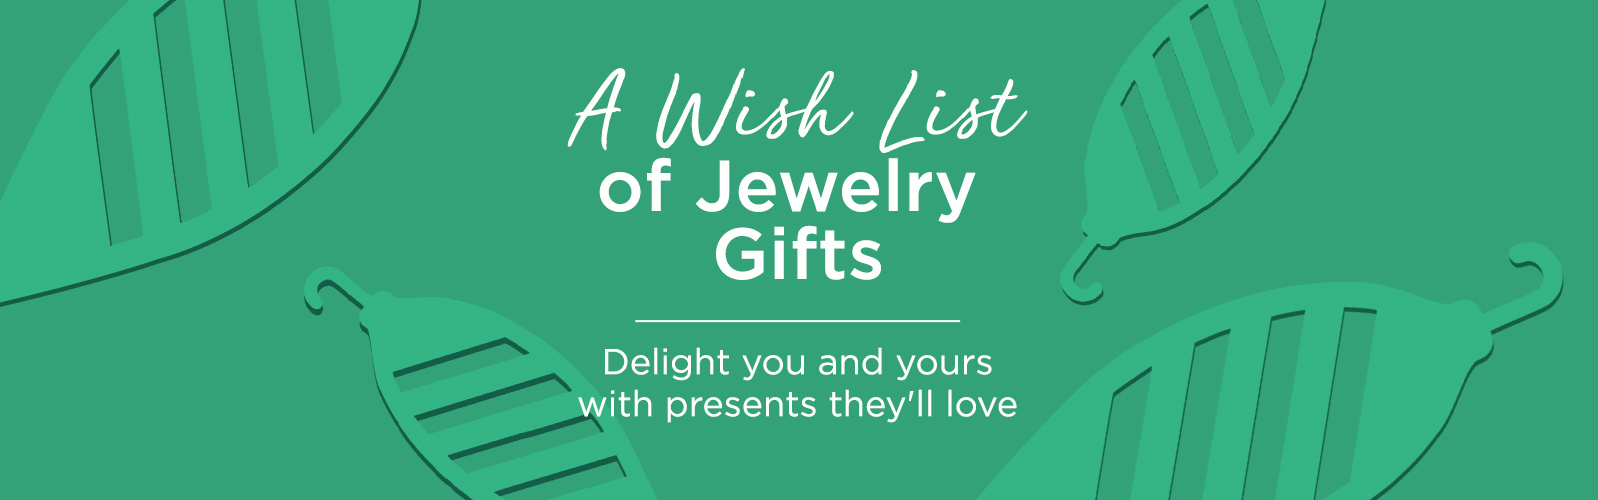 A Wish List of Jewelry Gifts - Delight you and yours with presents they'll love